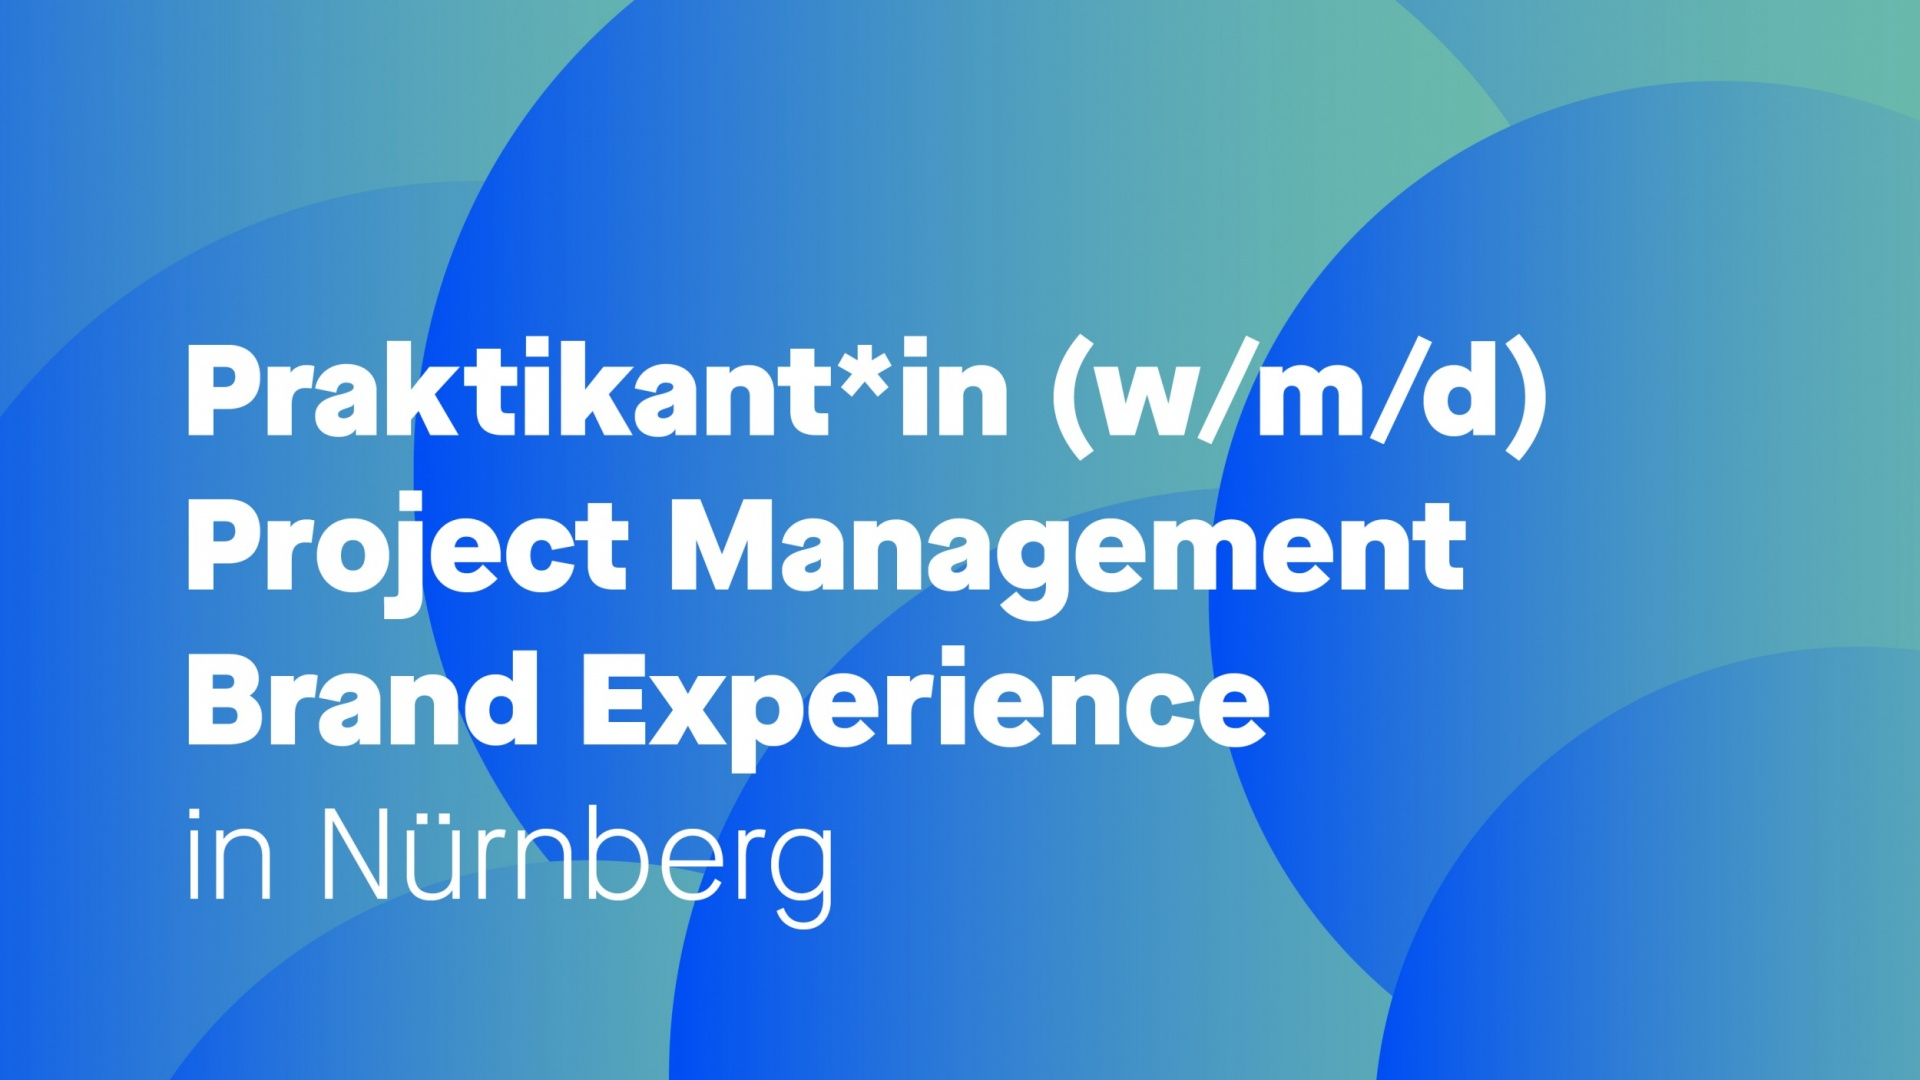 Praktikant*in Project Management Brand Experience (w/m/d)